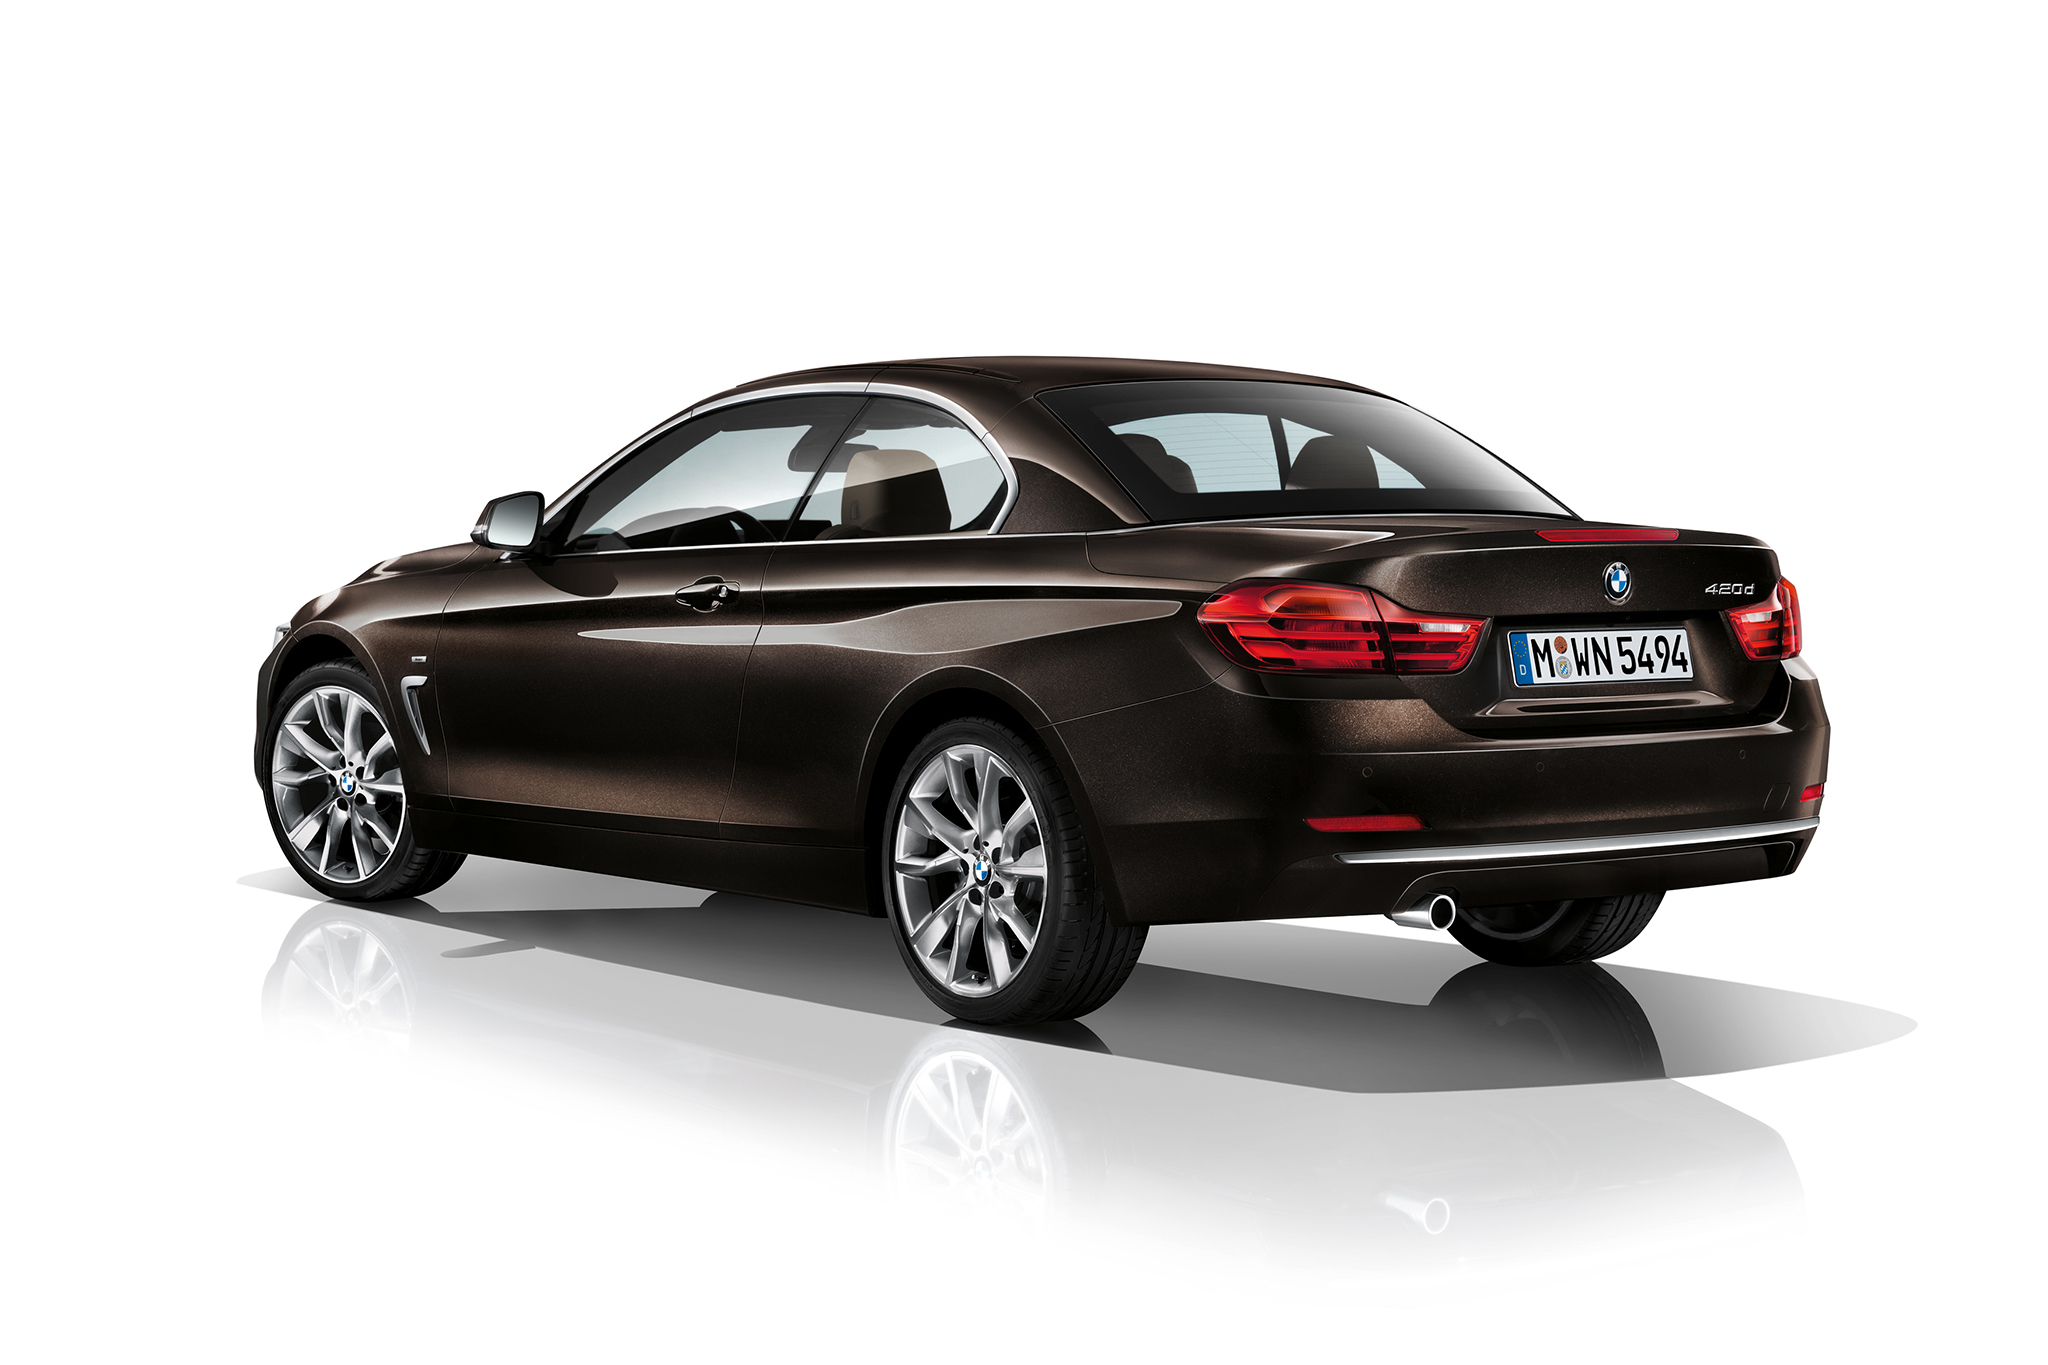 BMW 4 series 420d 2014 photo - 6